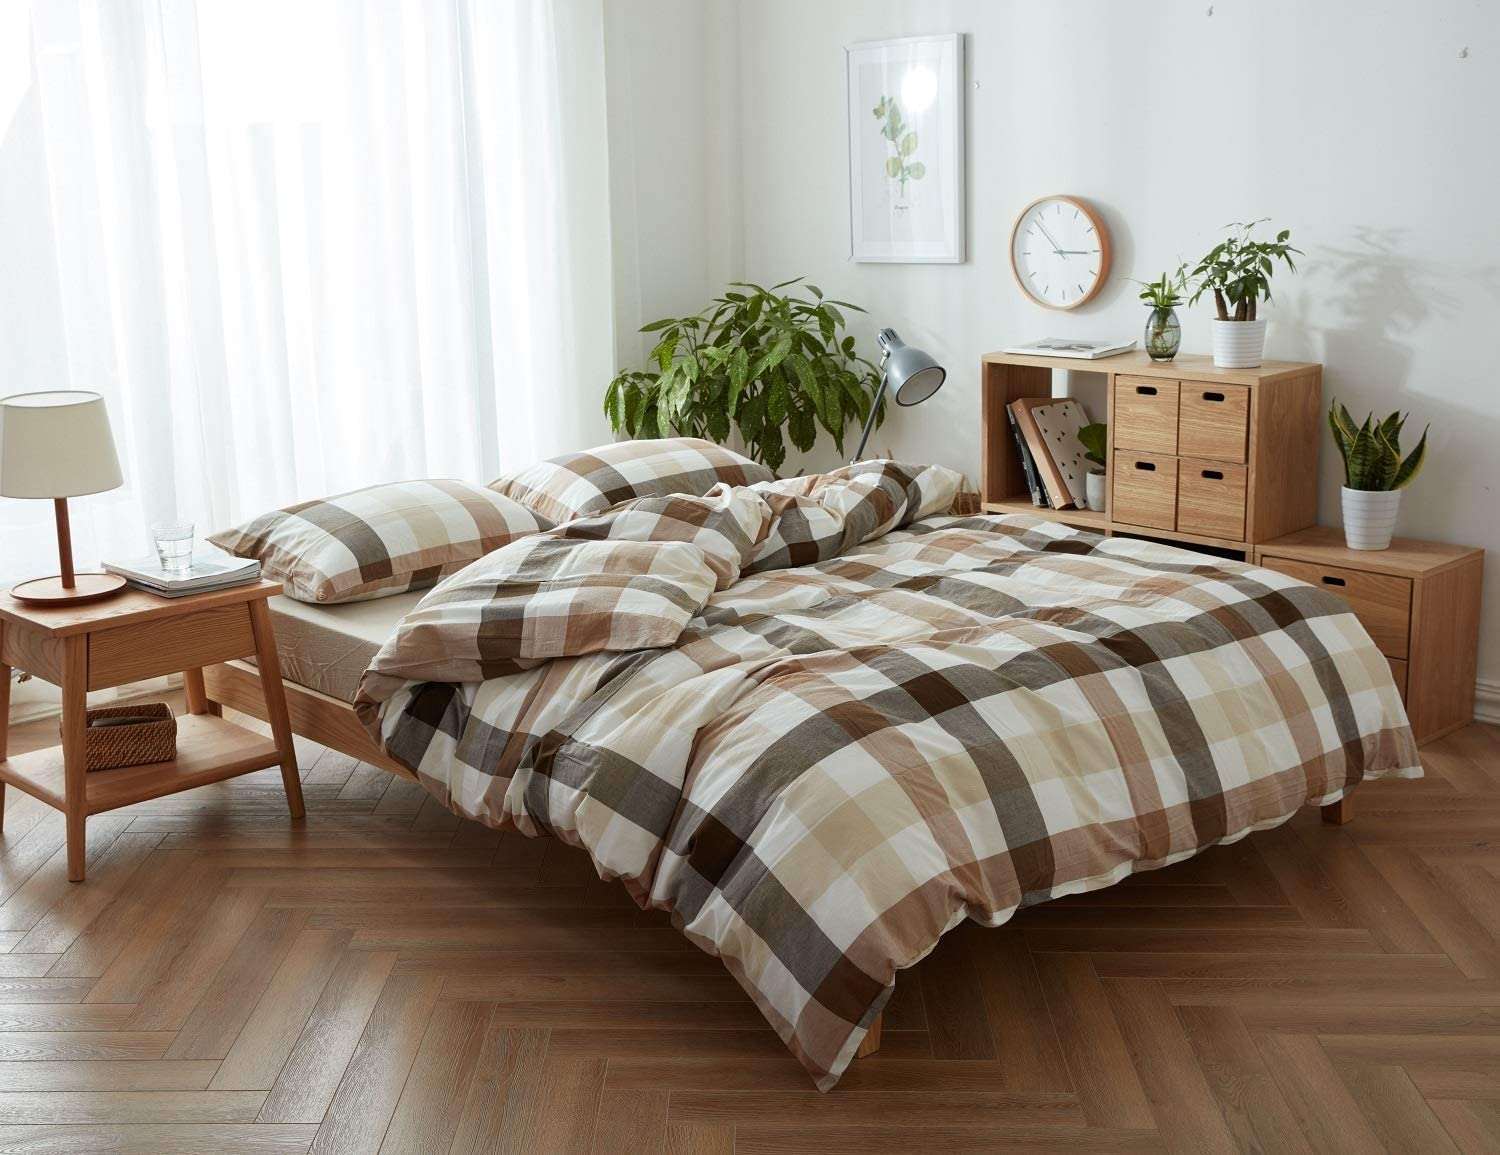 Jane yre Geometric Yellow Plaid Duvet Cover Set Queen,Washed Cotton 3 Piece Grid Bedding Set with Zipper Closure and 4 Corner Ties Luxurious, Comfortable, Breathable, Soft (No Comforter)